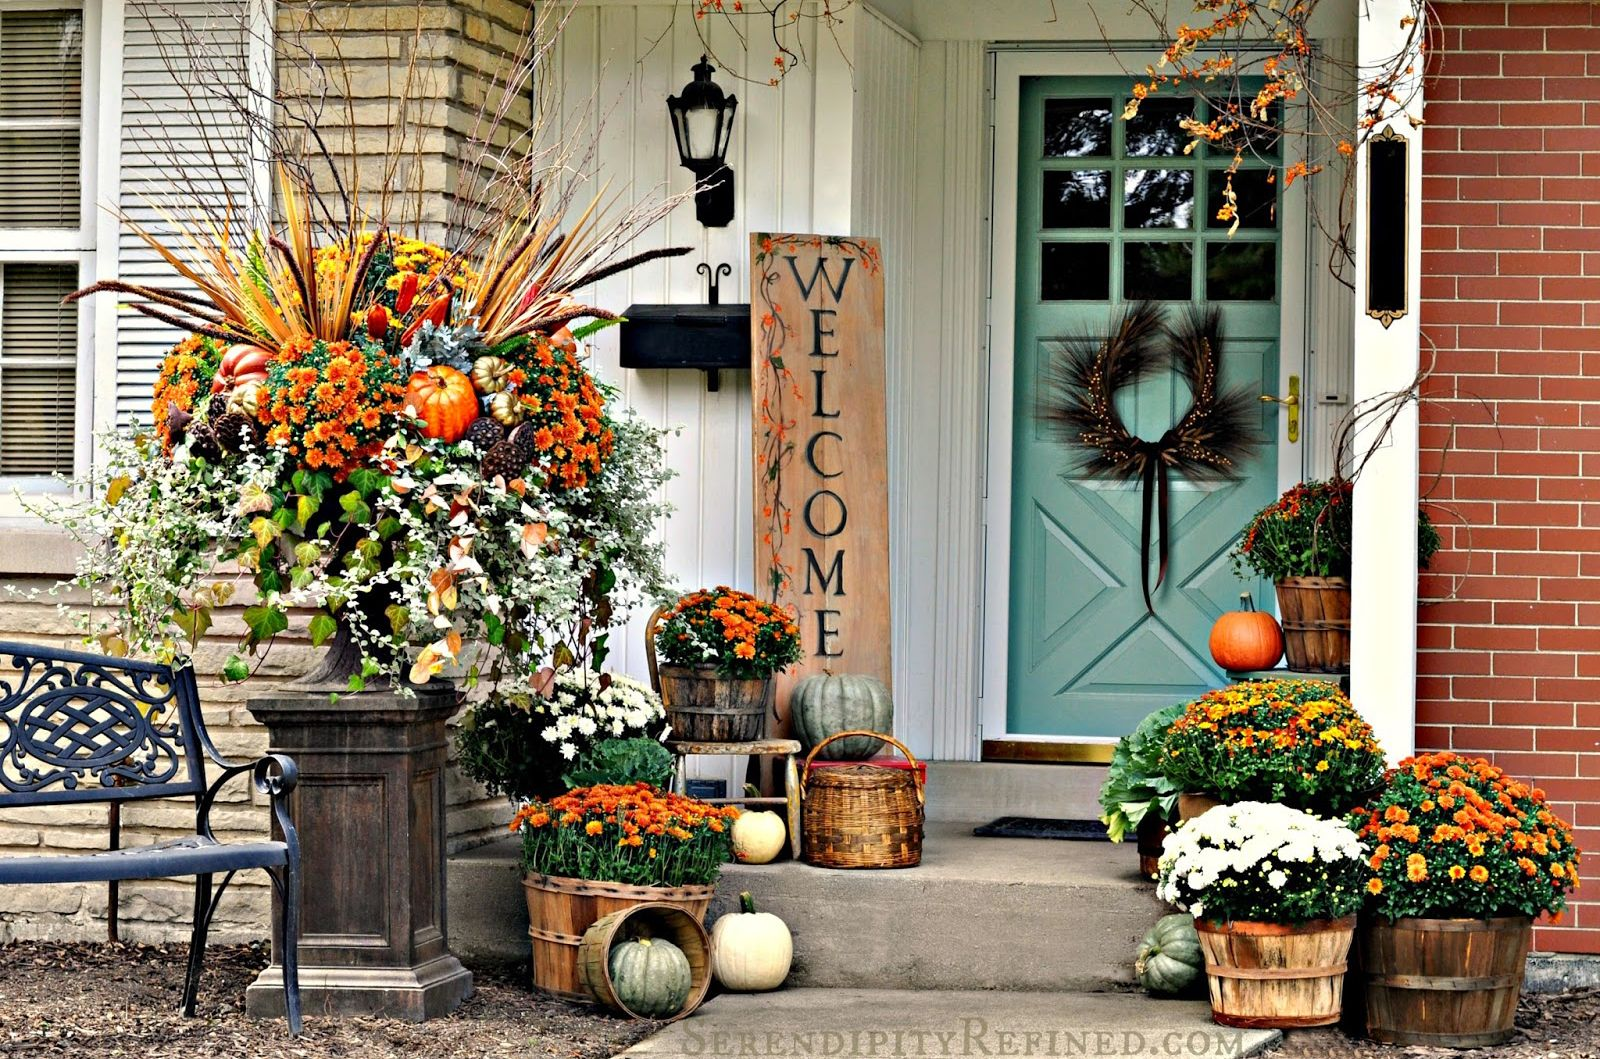 11 Fall Porch Decorating Ideas - Outdoor Fall Decor